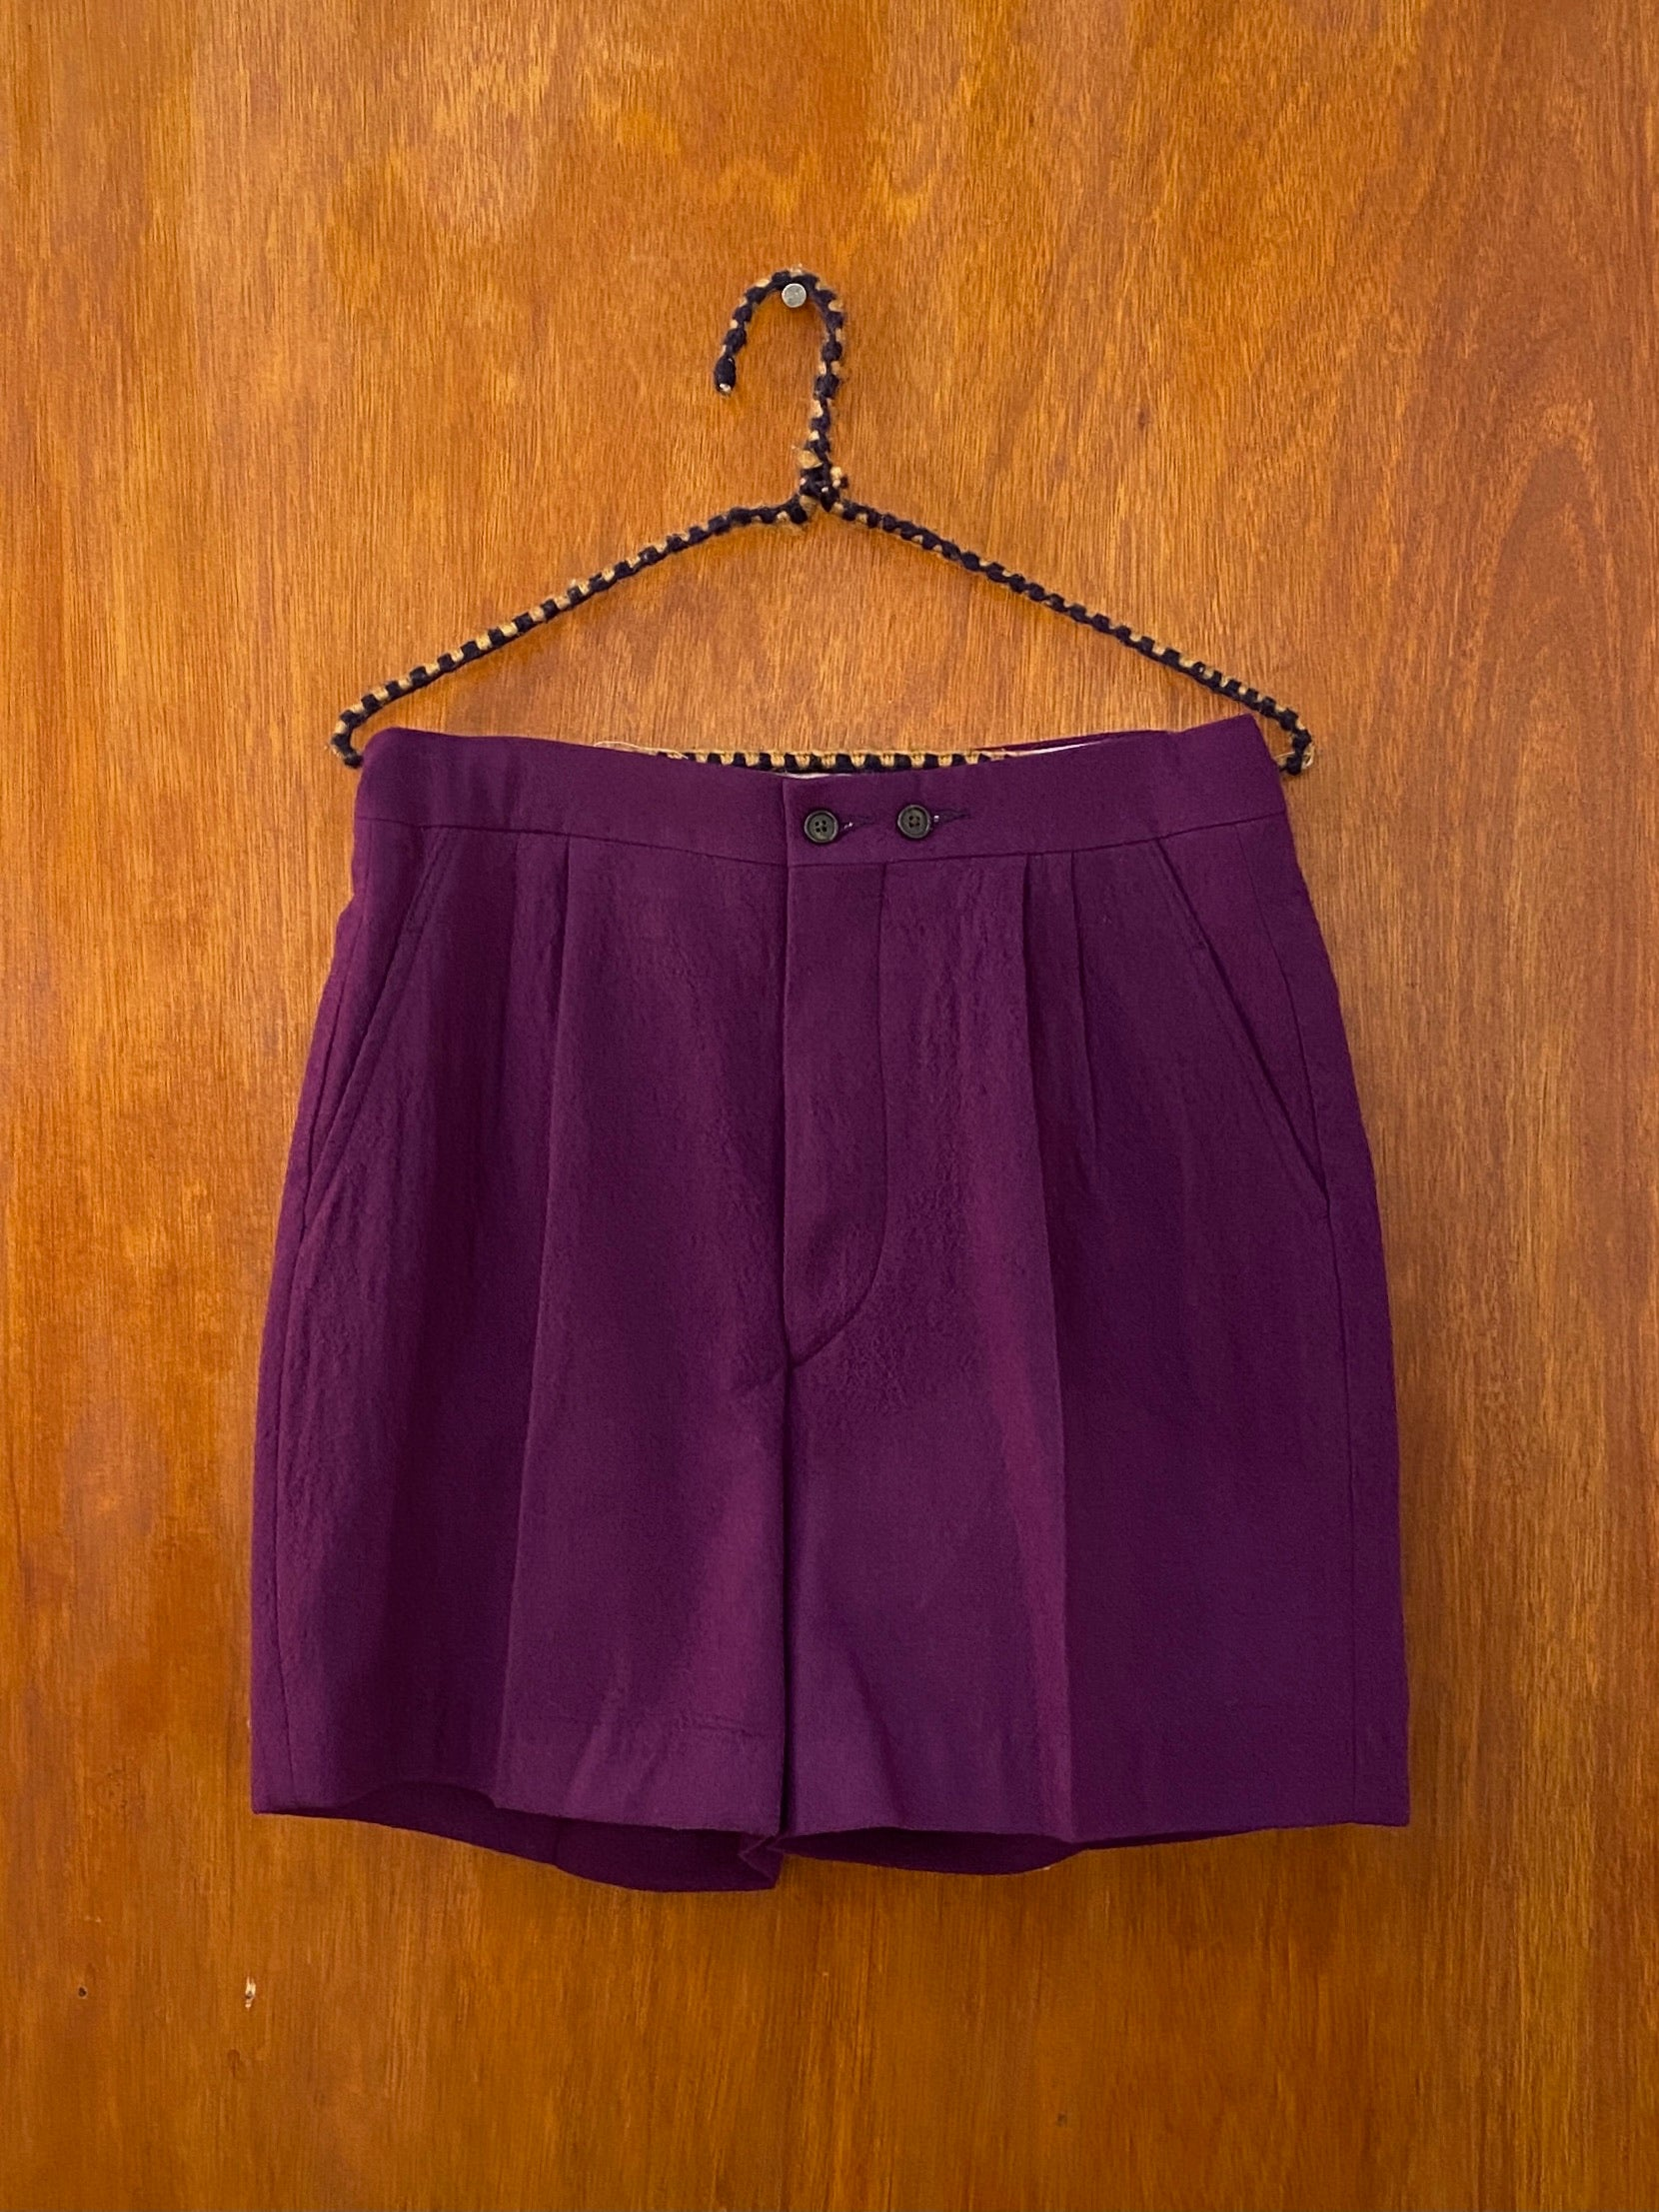 Purple Wool Shorts